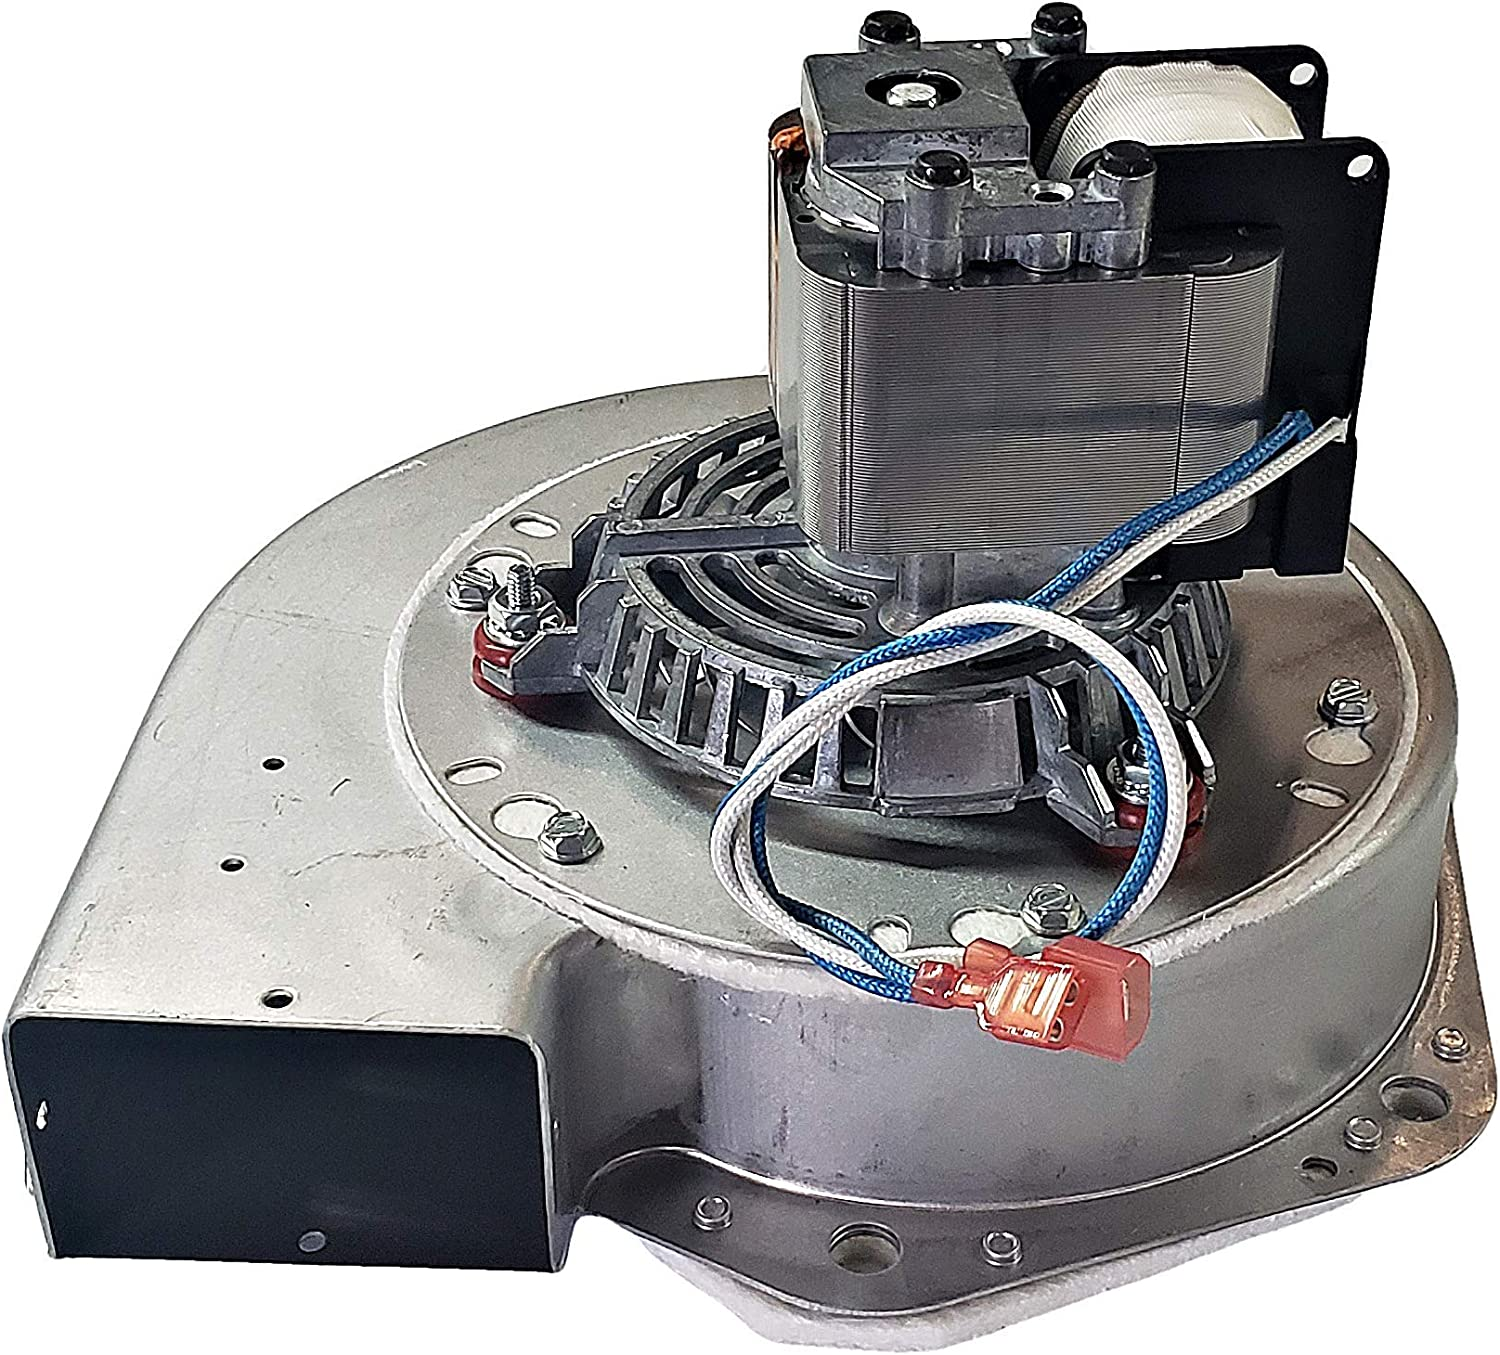 Pellethead Breckwell & Us Stove Combustion Blower Exhaust Motor With Housing A-E-027 PH-027